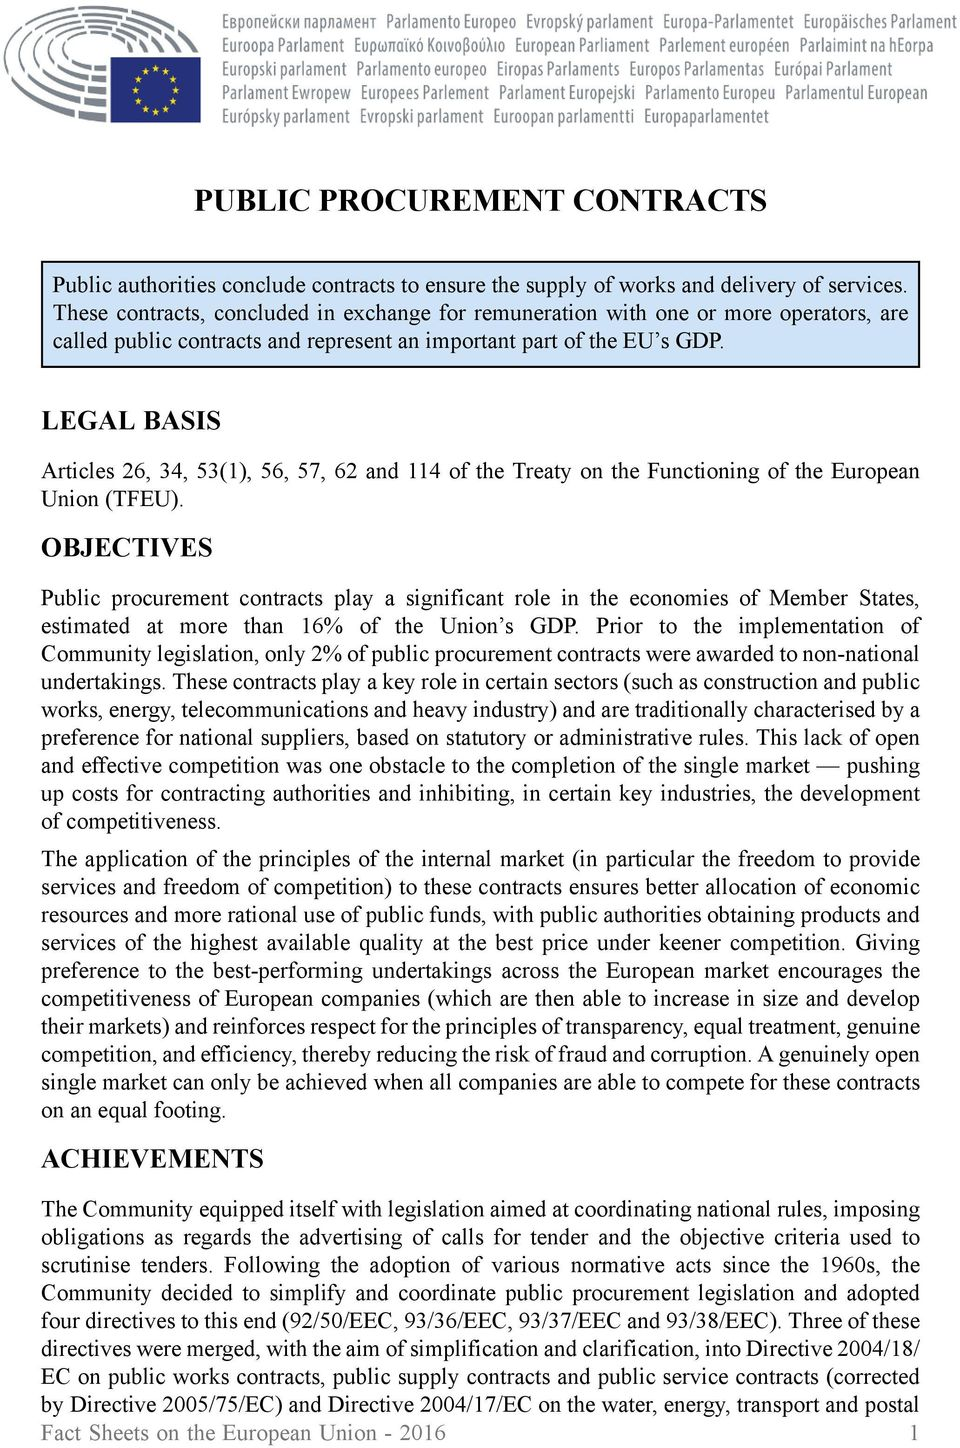 LEGAL BASIS Articles 26, 34, 53(1), 56, 57, 62 and 114 of the Treaty on the Functioning of the European Union (TFEU).